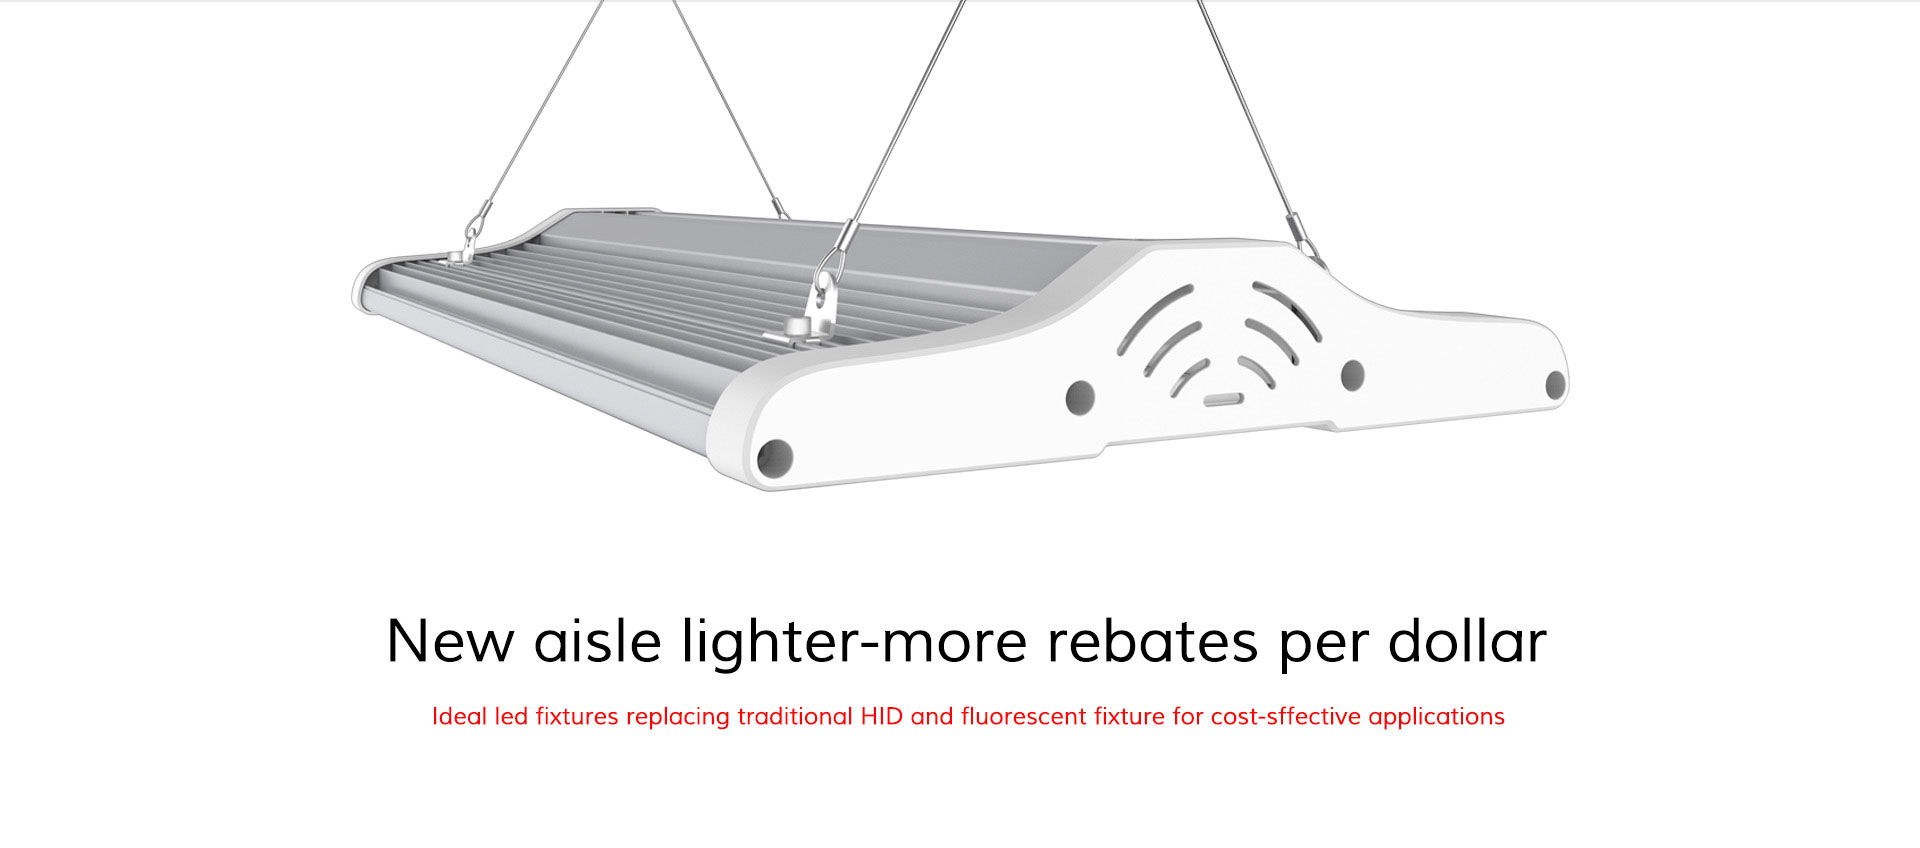 HiPanel New aisle lighter-more rebates per dollar